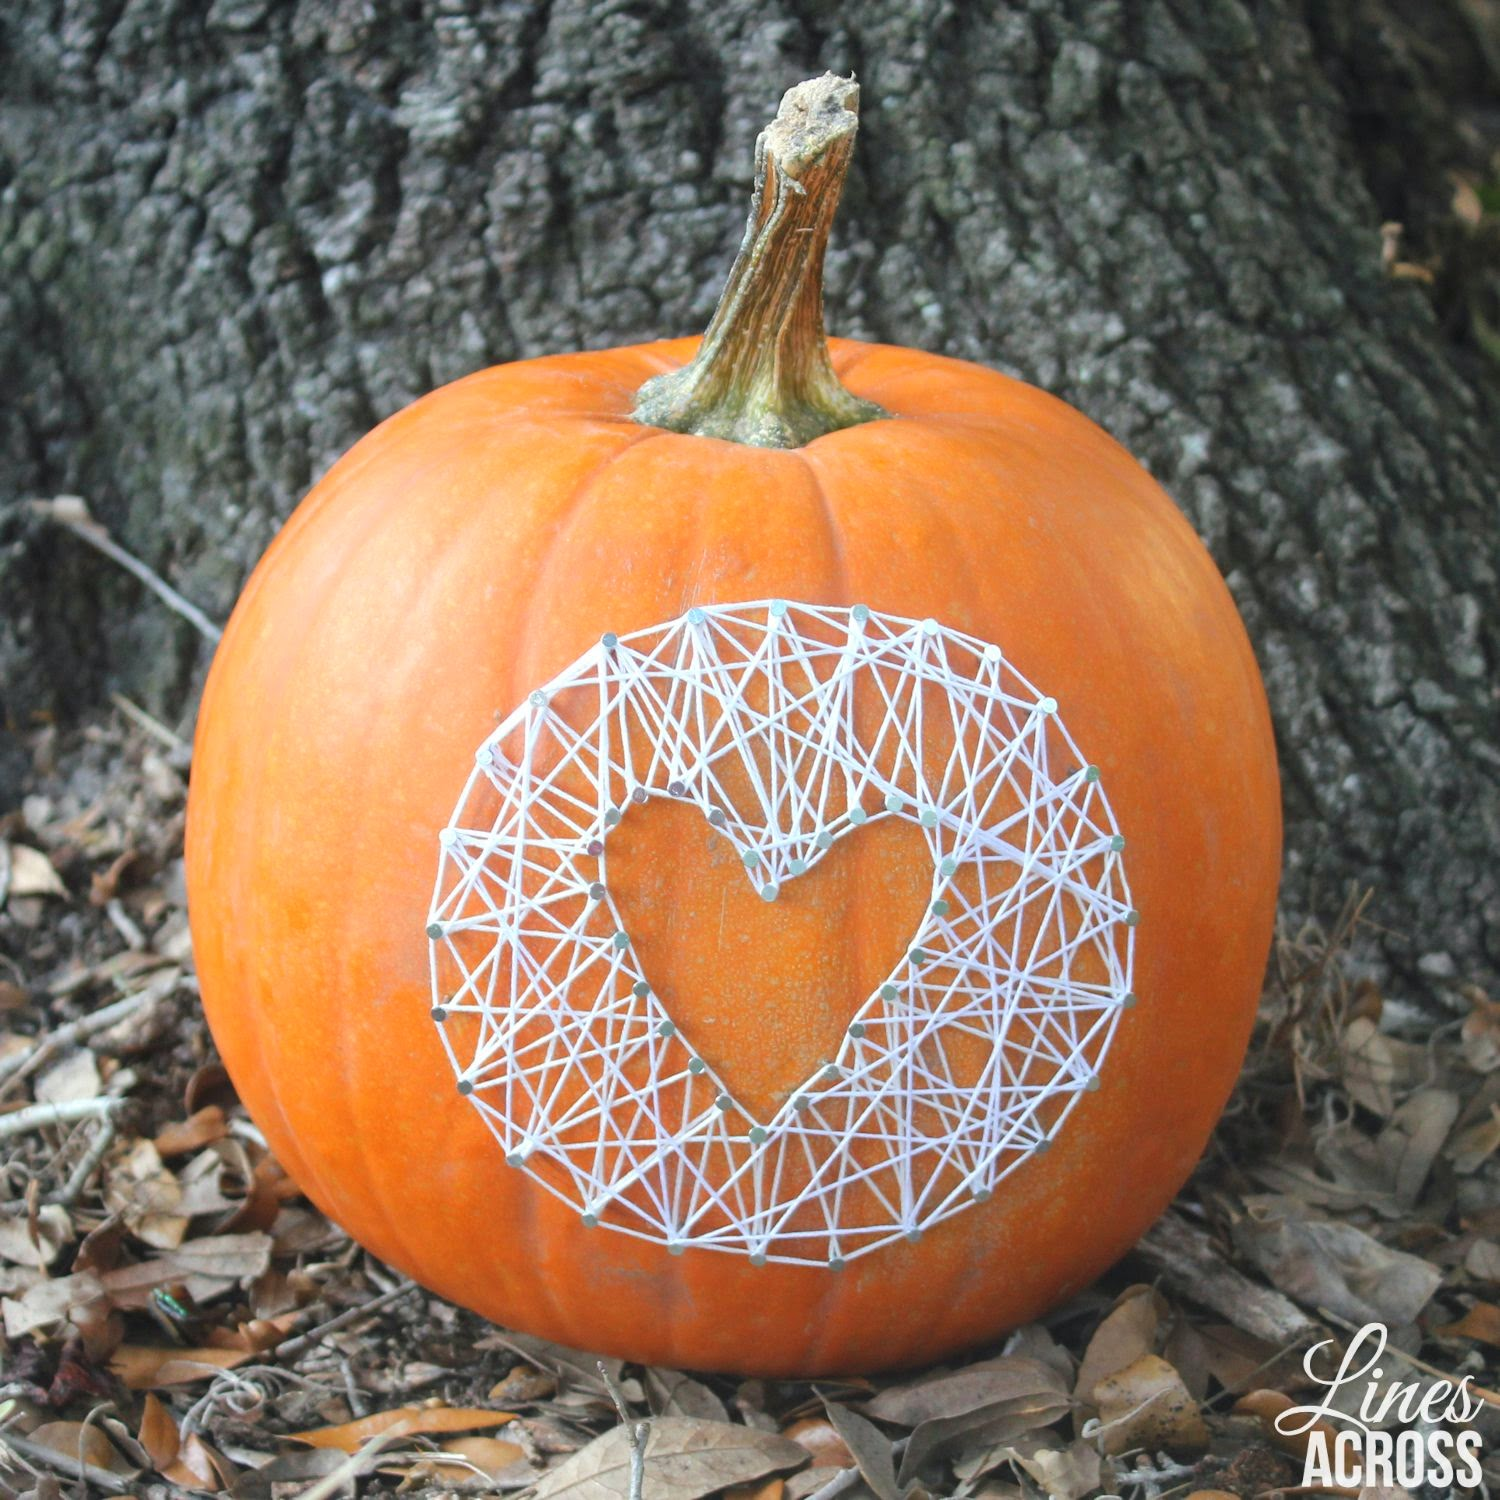 60 pumpkin designs we love for 2017 pumpkin decorating ideas - Pumpkin Decor